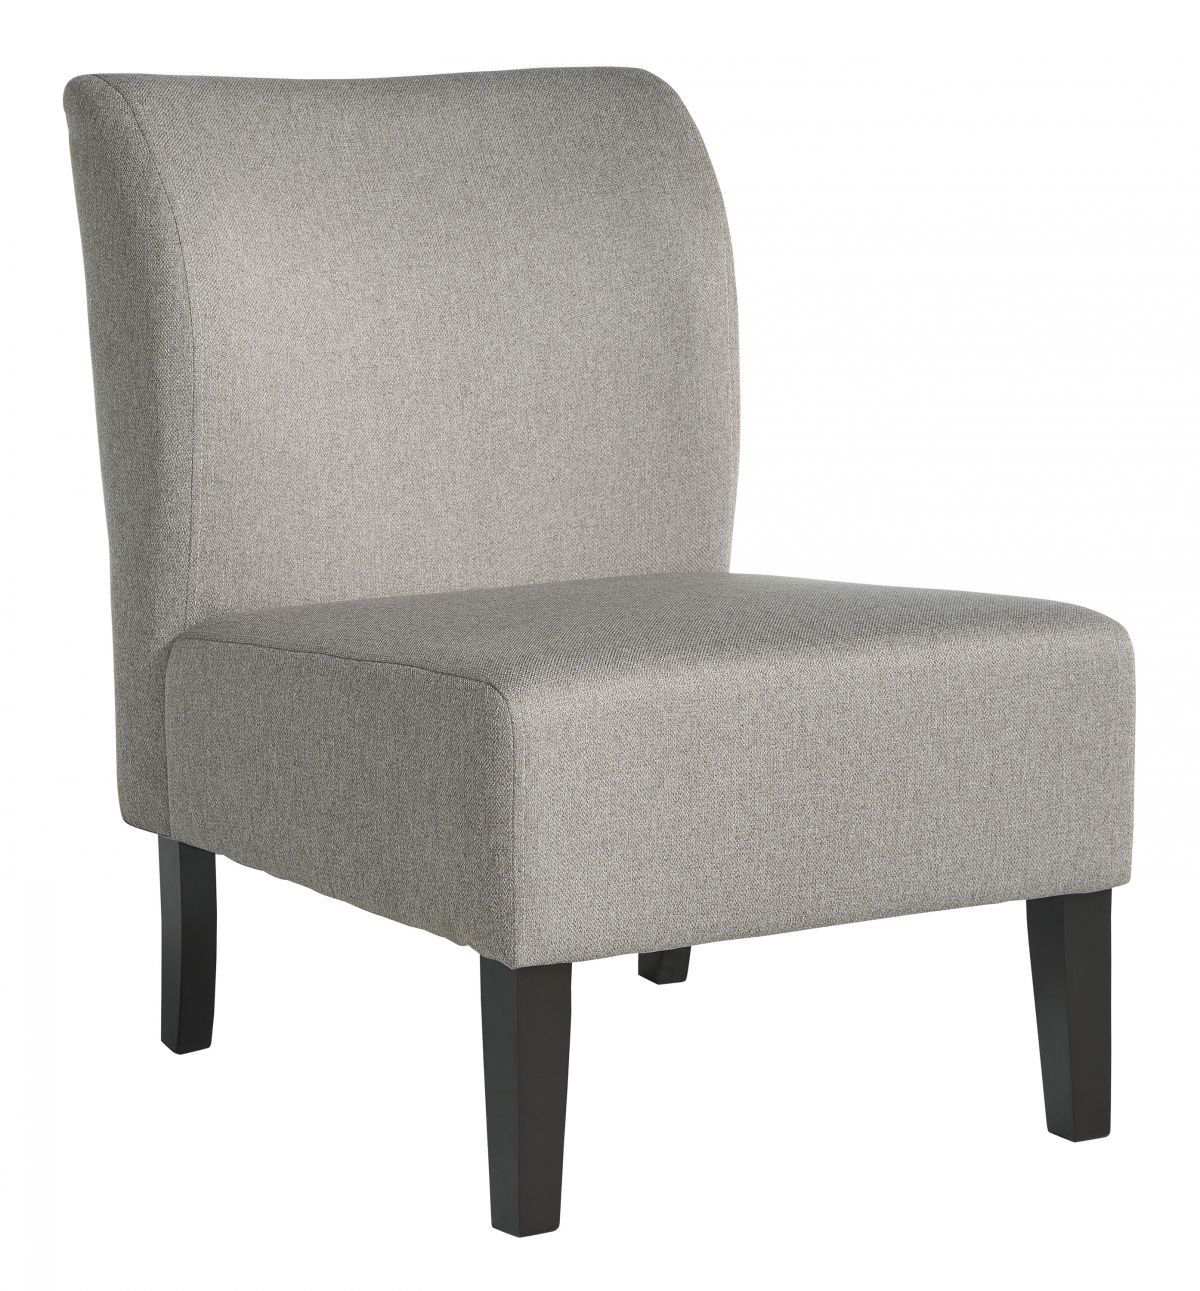 Picture of Triptis Chair